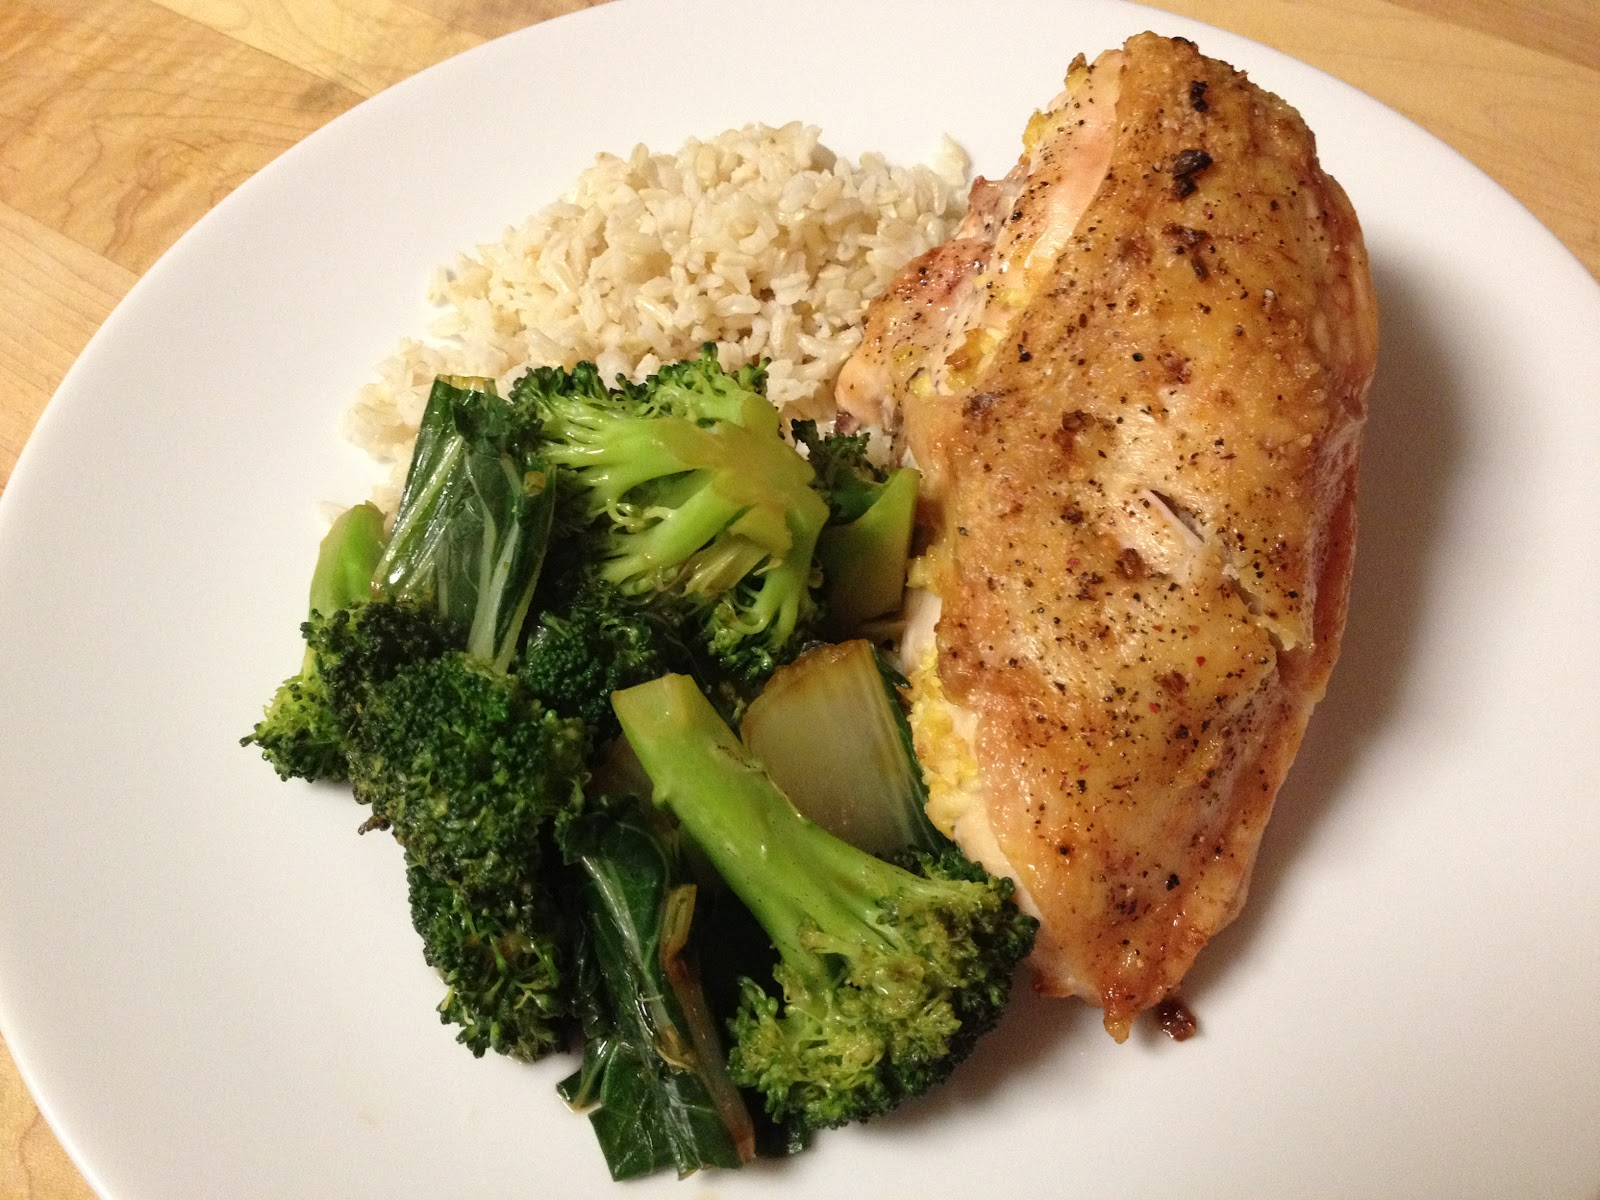 Small Talk: Ginger-Roasted Chicken with Bok Choy & Broccoli